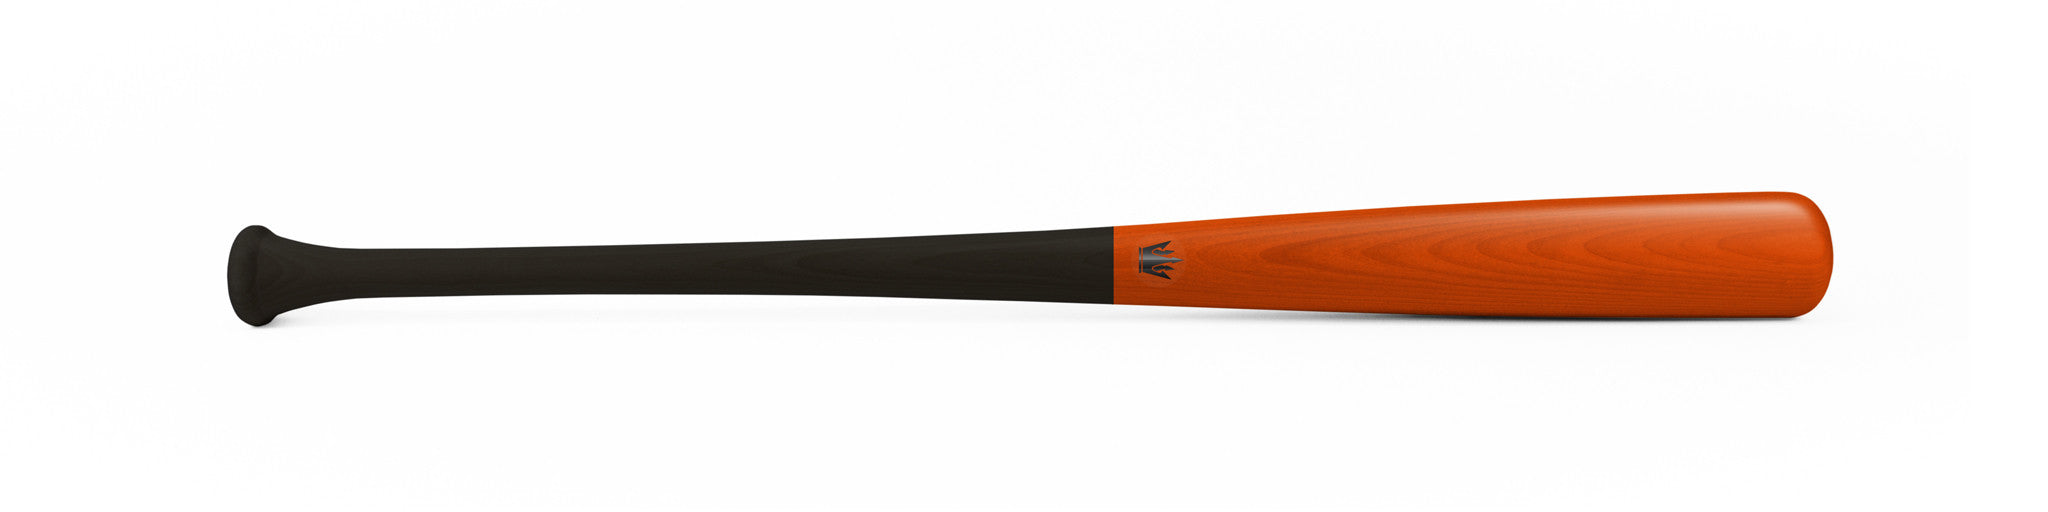 Wood bat - Birch model Y271 Black Orange - 13